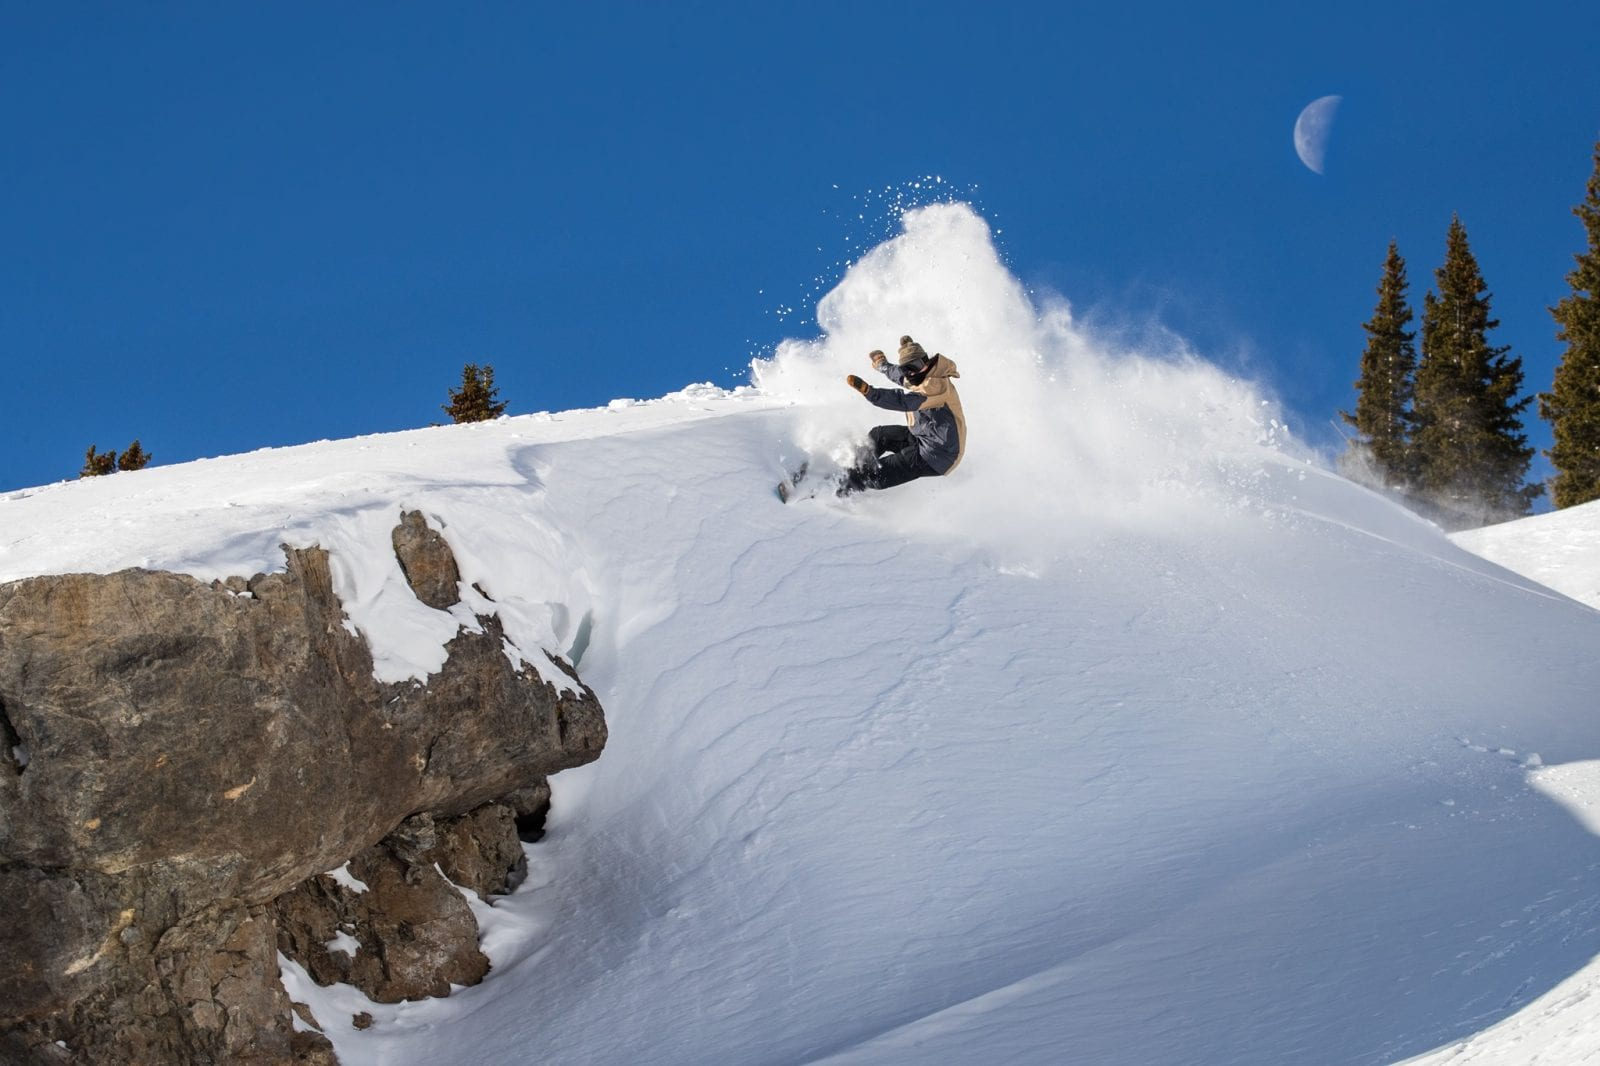 Image of a snowboarder jumping off a rock formation at Snowbird in Utah